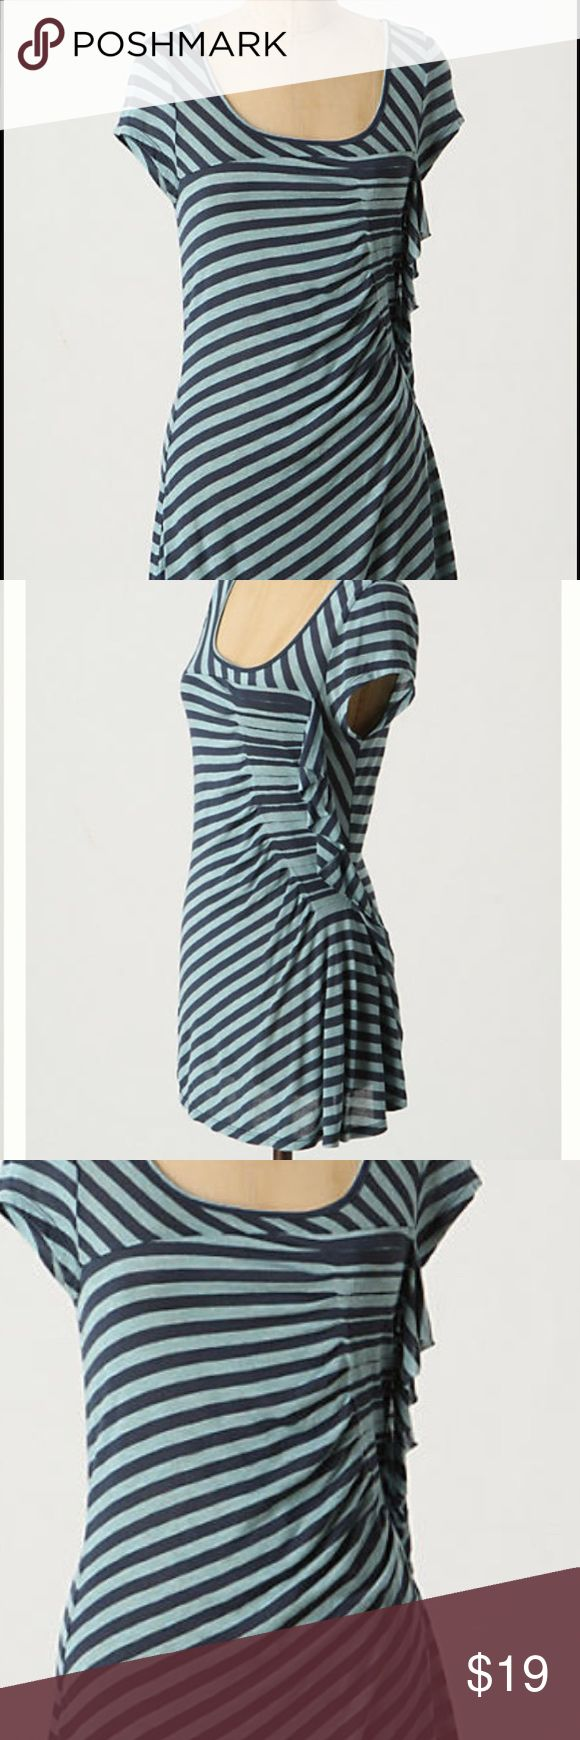 """Anthropologie Cartonnier Dorsal Tee Sz S $58 Cartonnier's skewed modal shirt forms a gathering of streamlined pleats and perky ruffles.  Modal  Machine wash  27""""L  Imported Anthropologie Tops Blouses"""